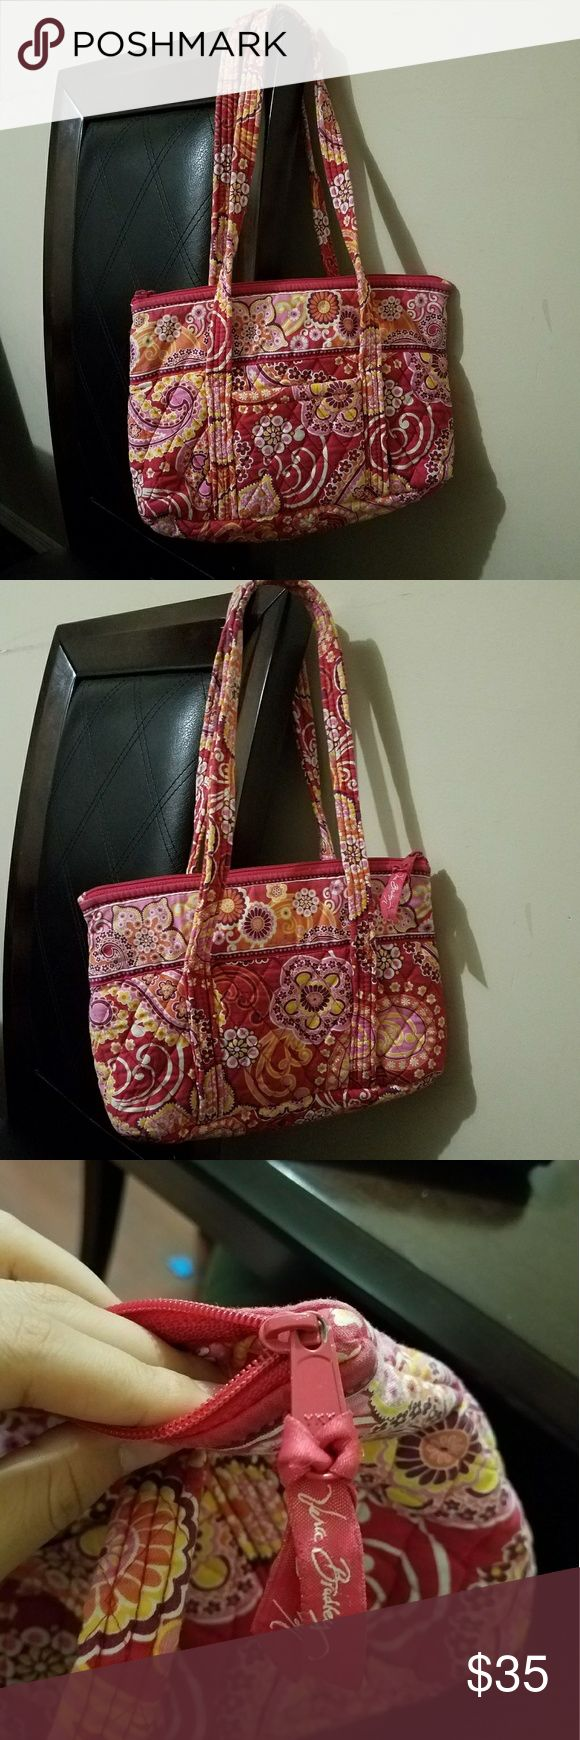 "Vera Bradley little betsy tote, retired pattern Floral, pink, yellow, orange, red... has 1 pocket outside and 6 pockets inside, 100% cotton, machine wash. W: 11.75""... tall: 8"" Vera Bradley Bags Shoulder Bags"